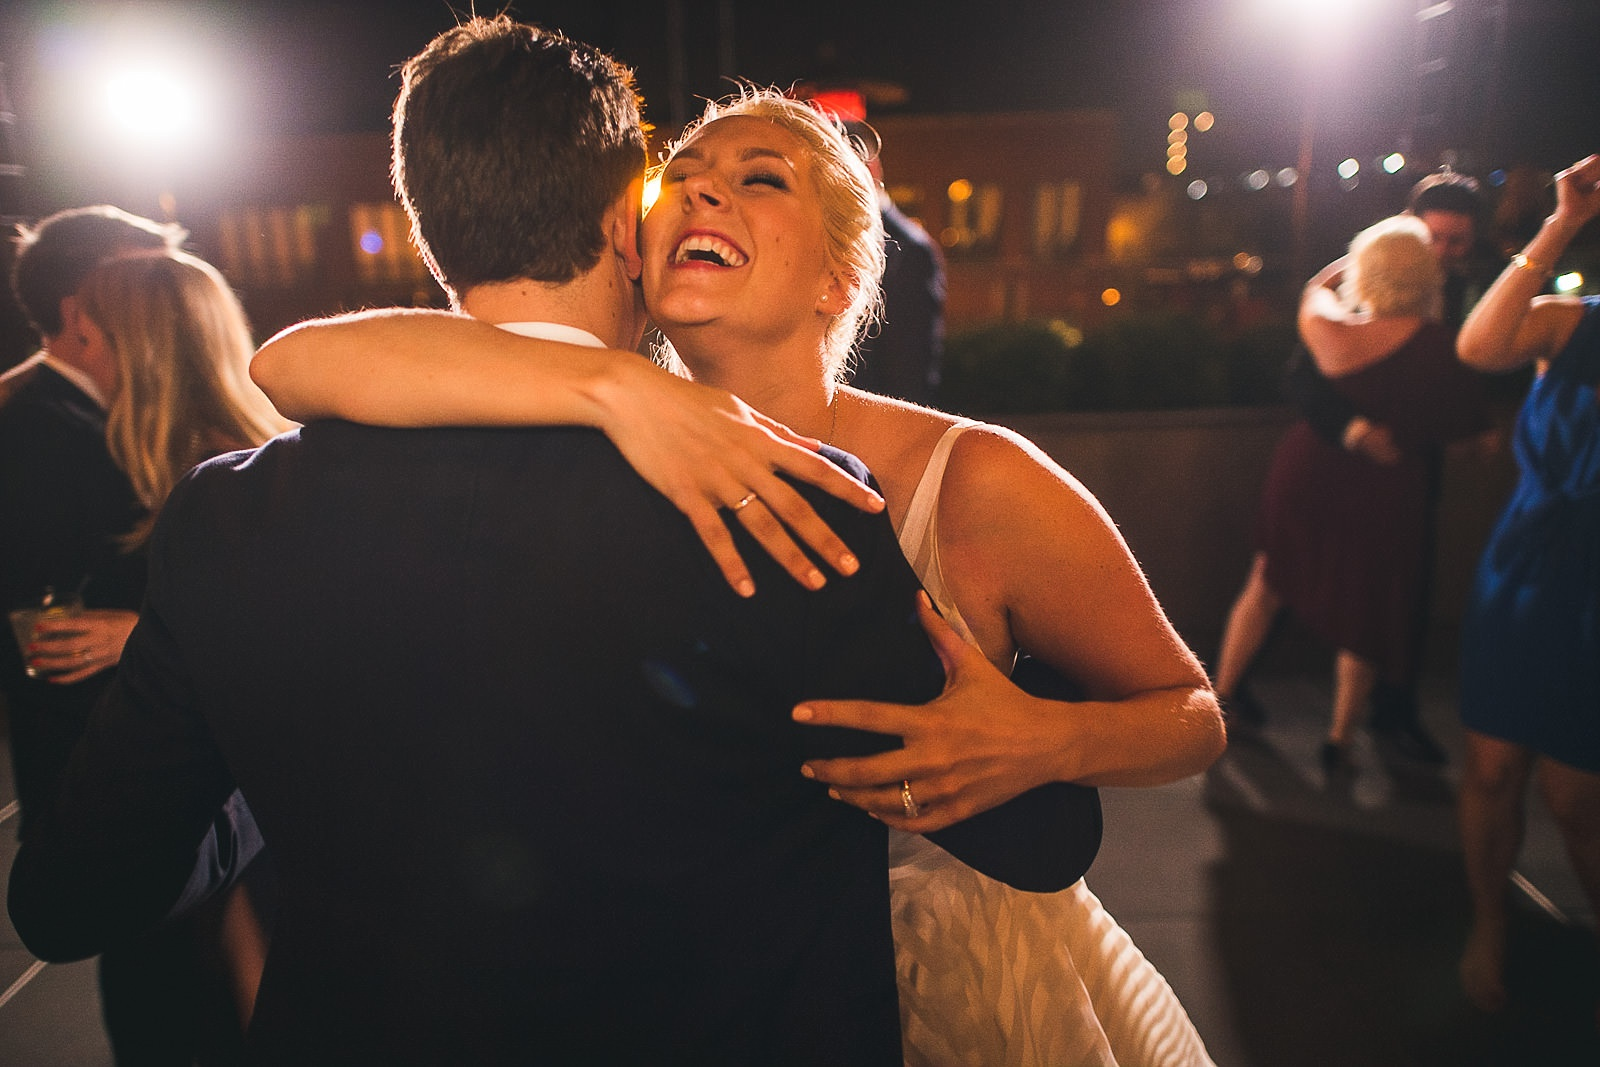 64 wedding dances under the stars - Morgan's on Fulton Wedding Photos // Jessica + Bill